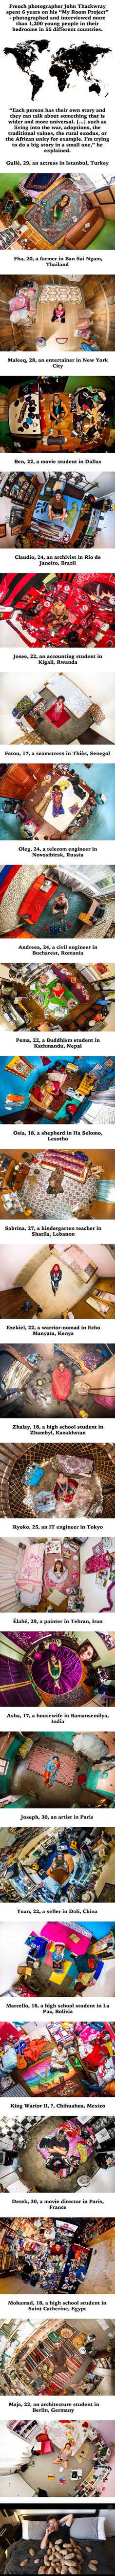 24 Intimate Photos Of Millennials' Bedroom From Around The World (By John Thackwray) - 9GAG